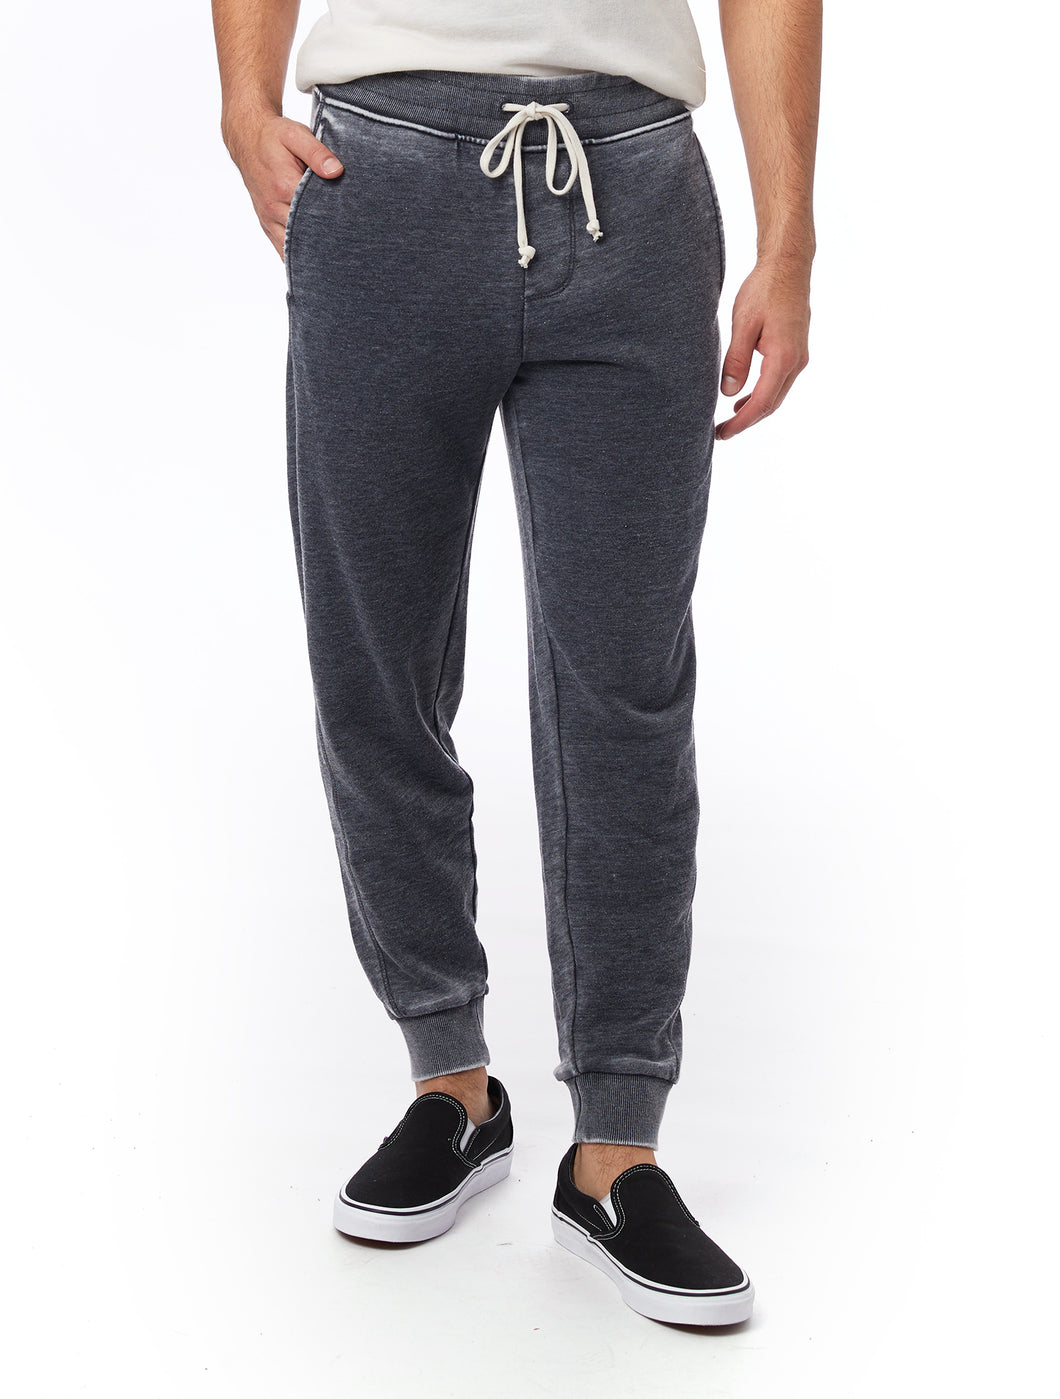 ALTERNATIVE APP - Campus Burnout French Terry Jogger Pants - Guys and Co.